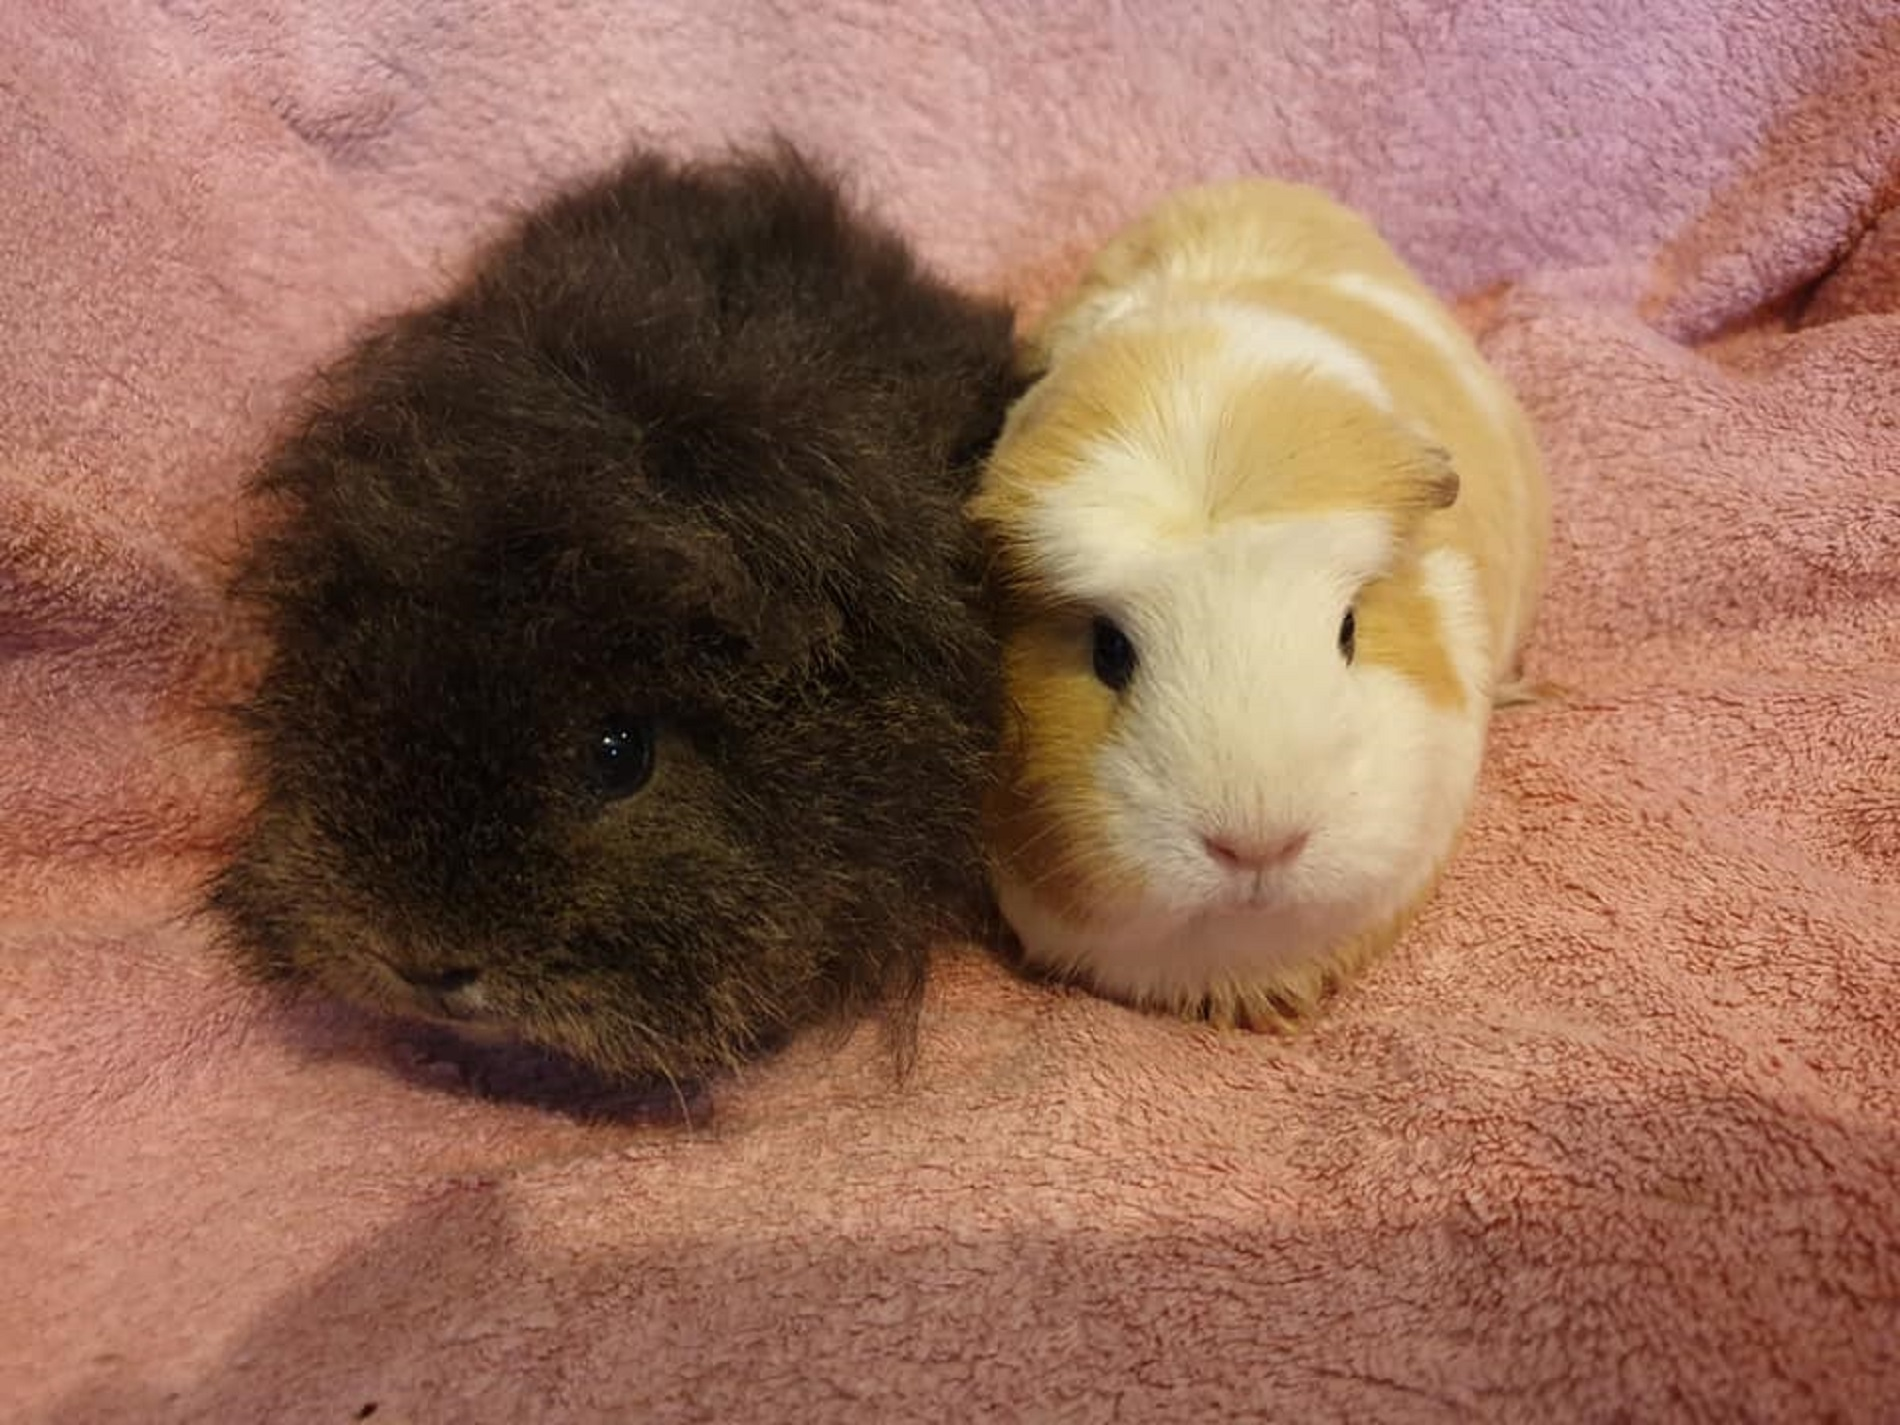 Fluffy & Pearl October 20th 2019